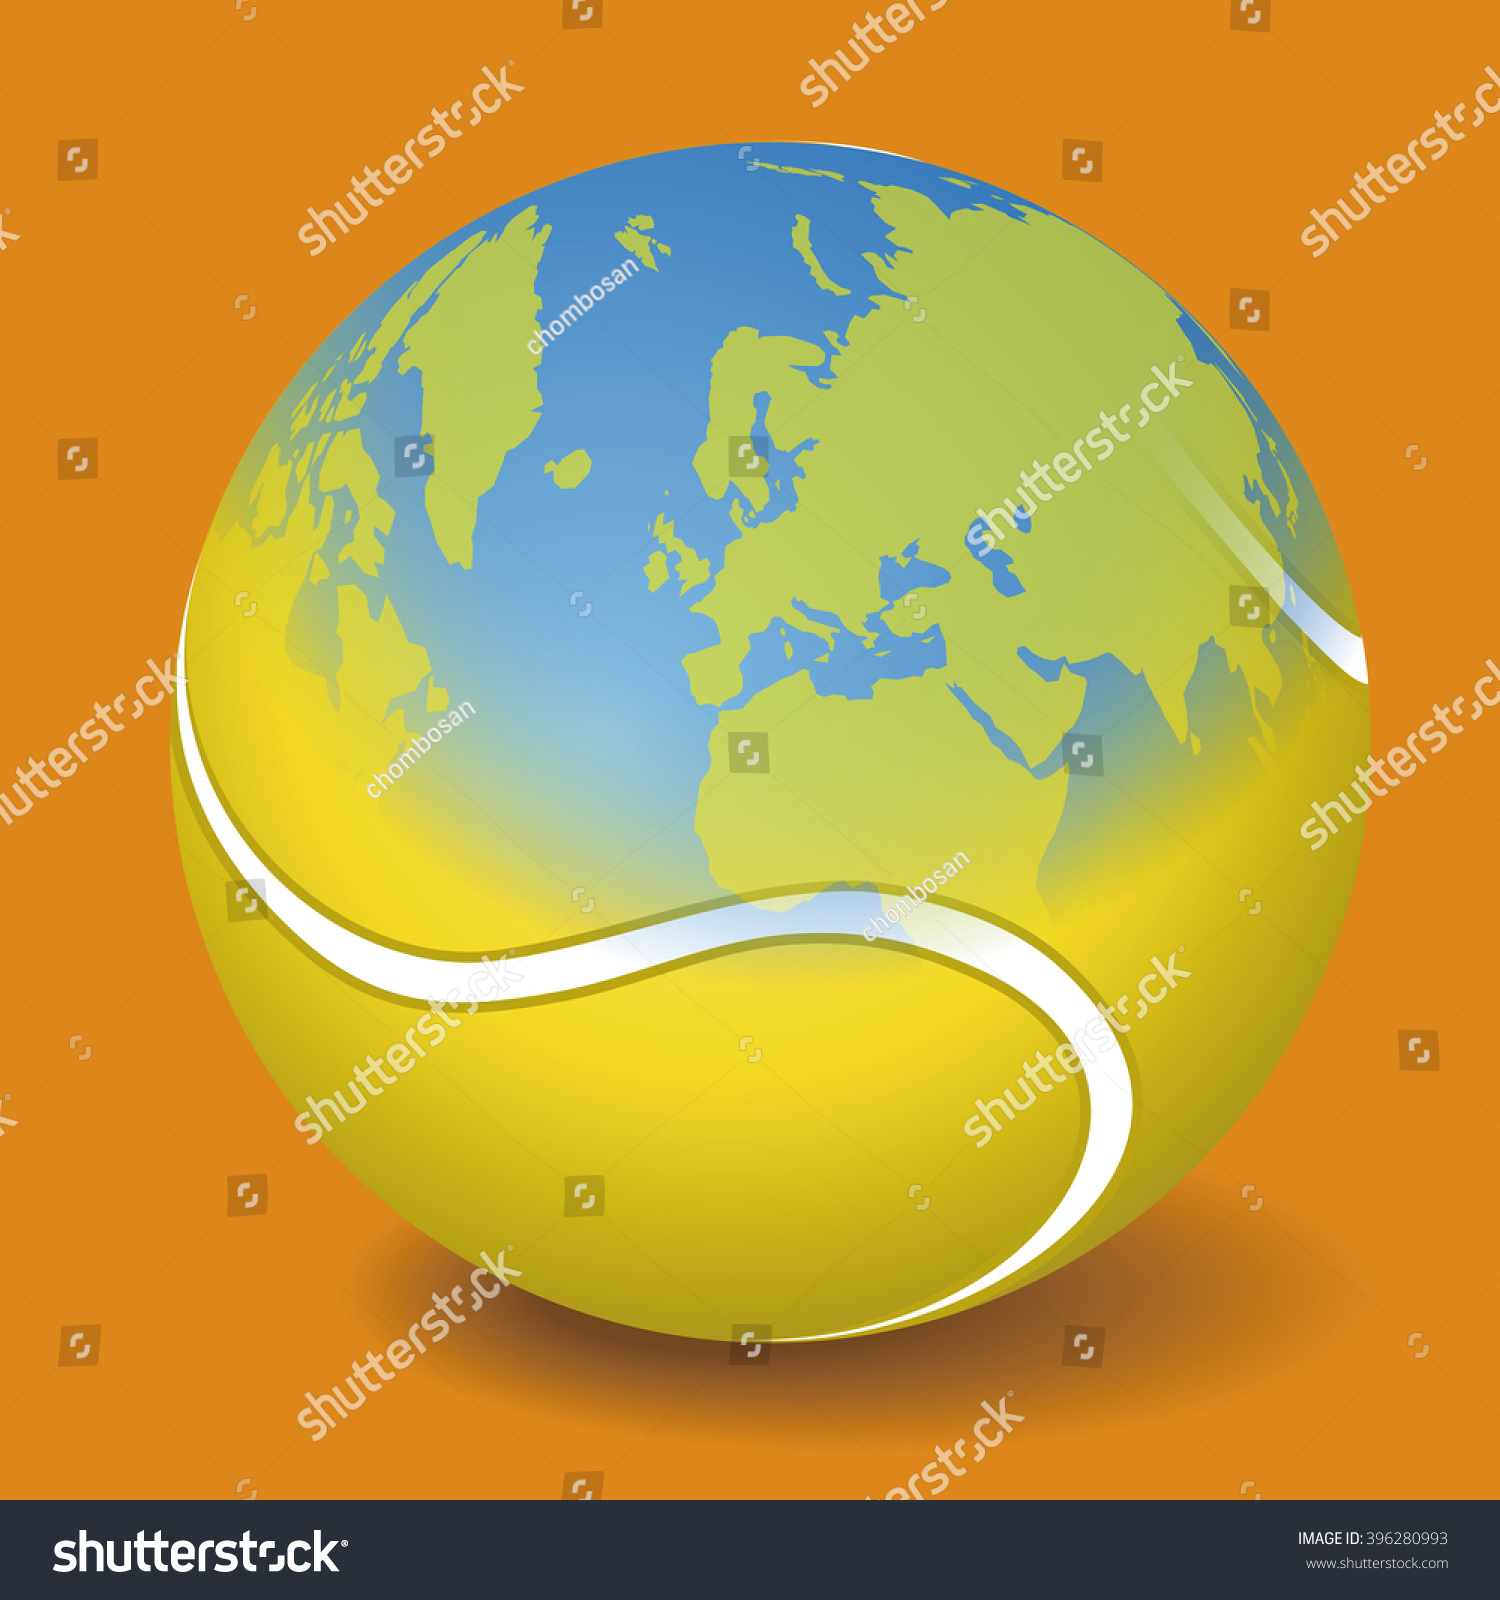 Tennis ball world map vector illustration stock vector 396280993 tennis ball and world map vector illustration gumiabroncs Gallery